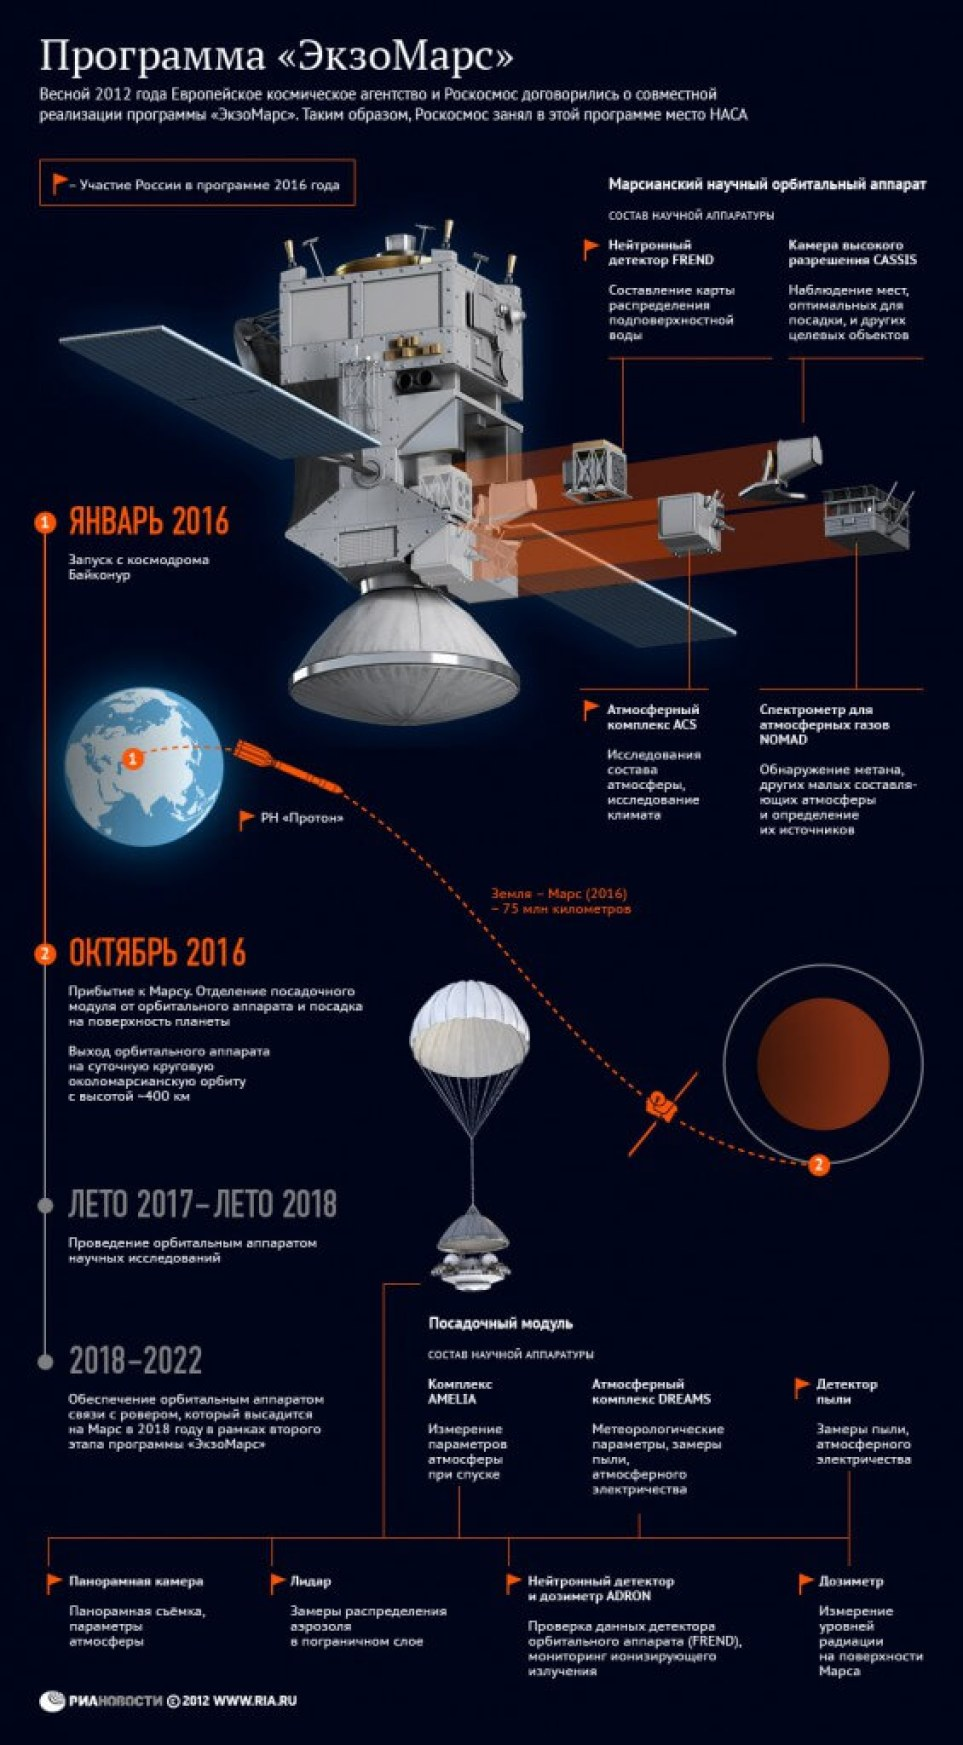 Russian space agency also on the hunt for extraterrestrial life